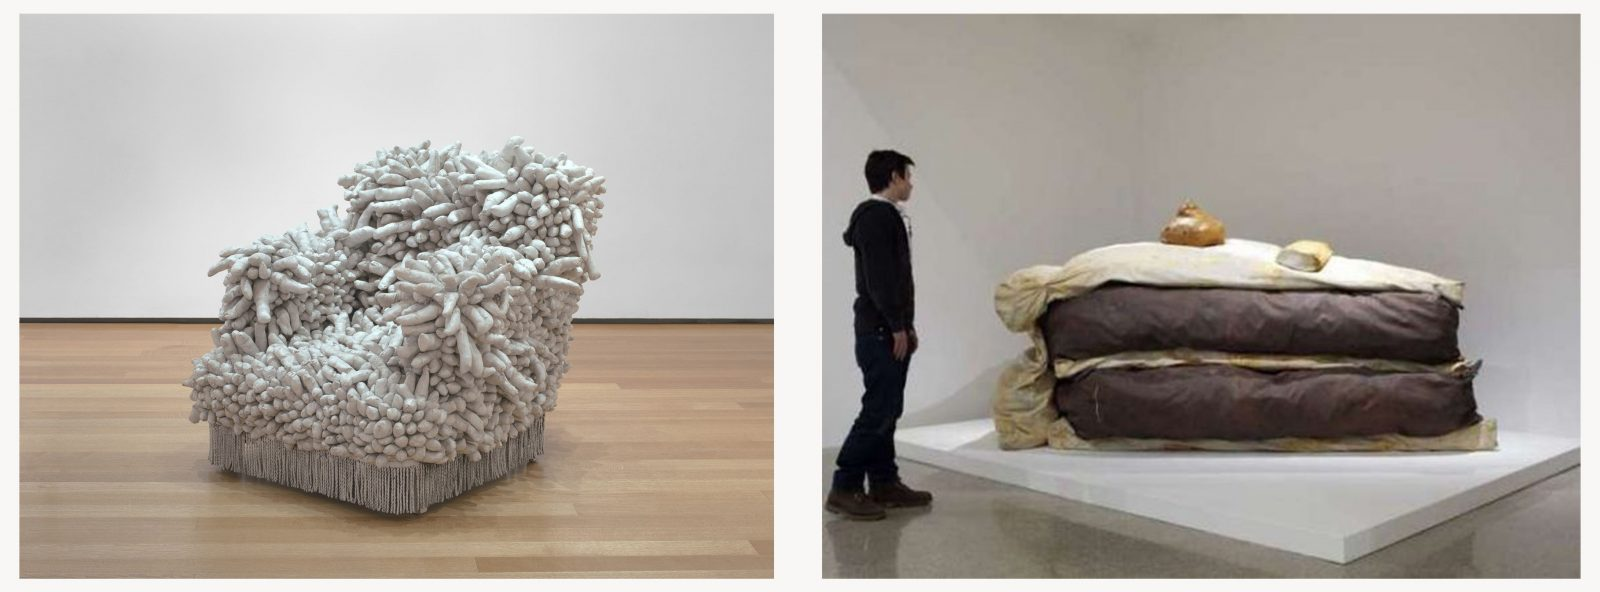 Juxtaposition of two photographs with on the left Yayoi Kusama's armchair covered by penises in fabric and on the left a human-scale sculpture in fabric looking like a piece of chocolate cake.